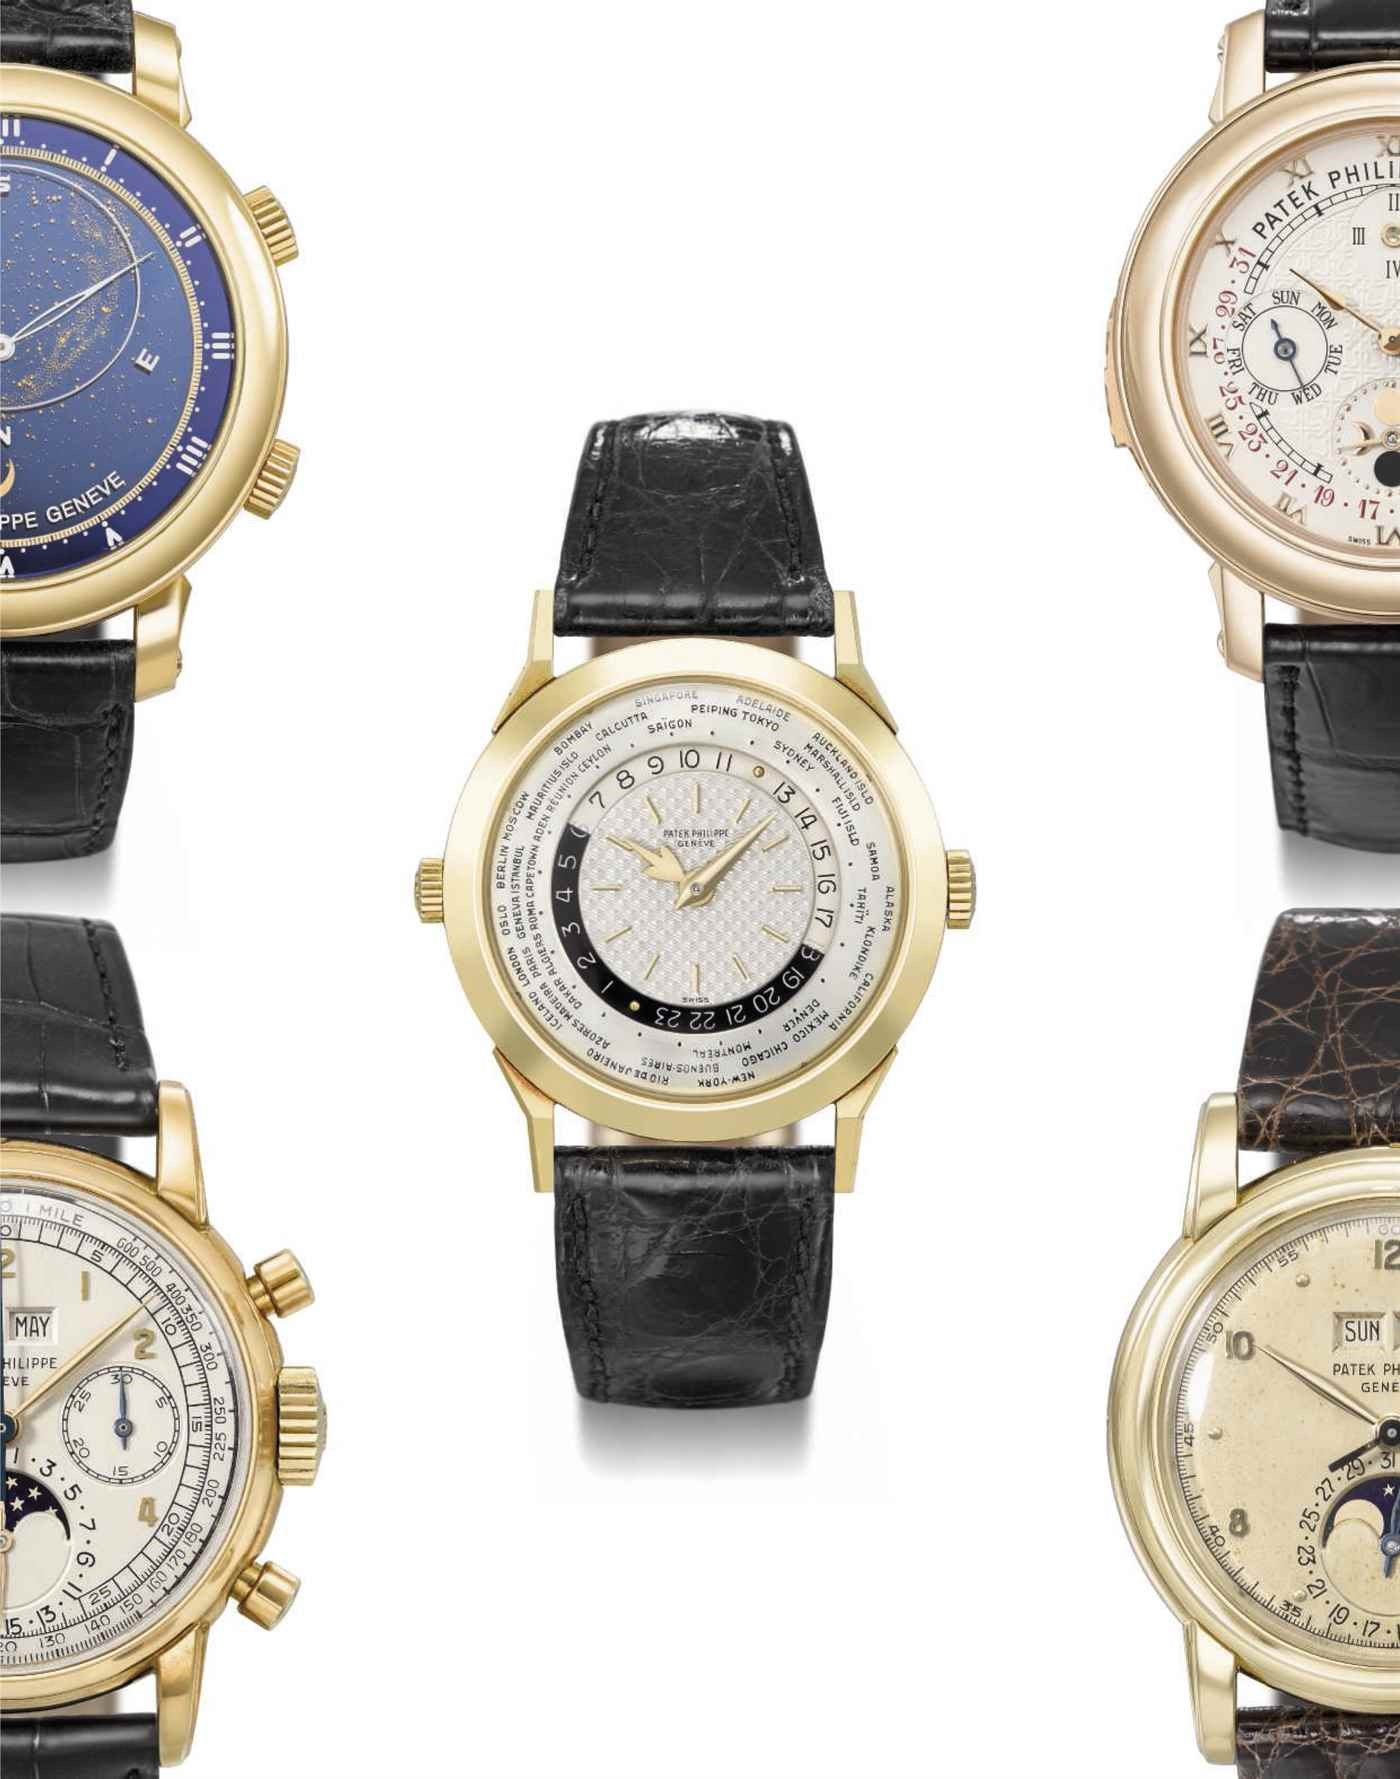 Rare Watches Including Importa auction at Christies